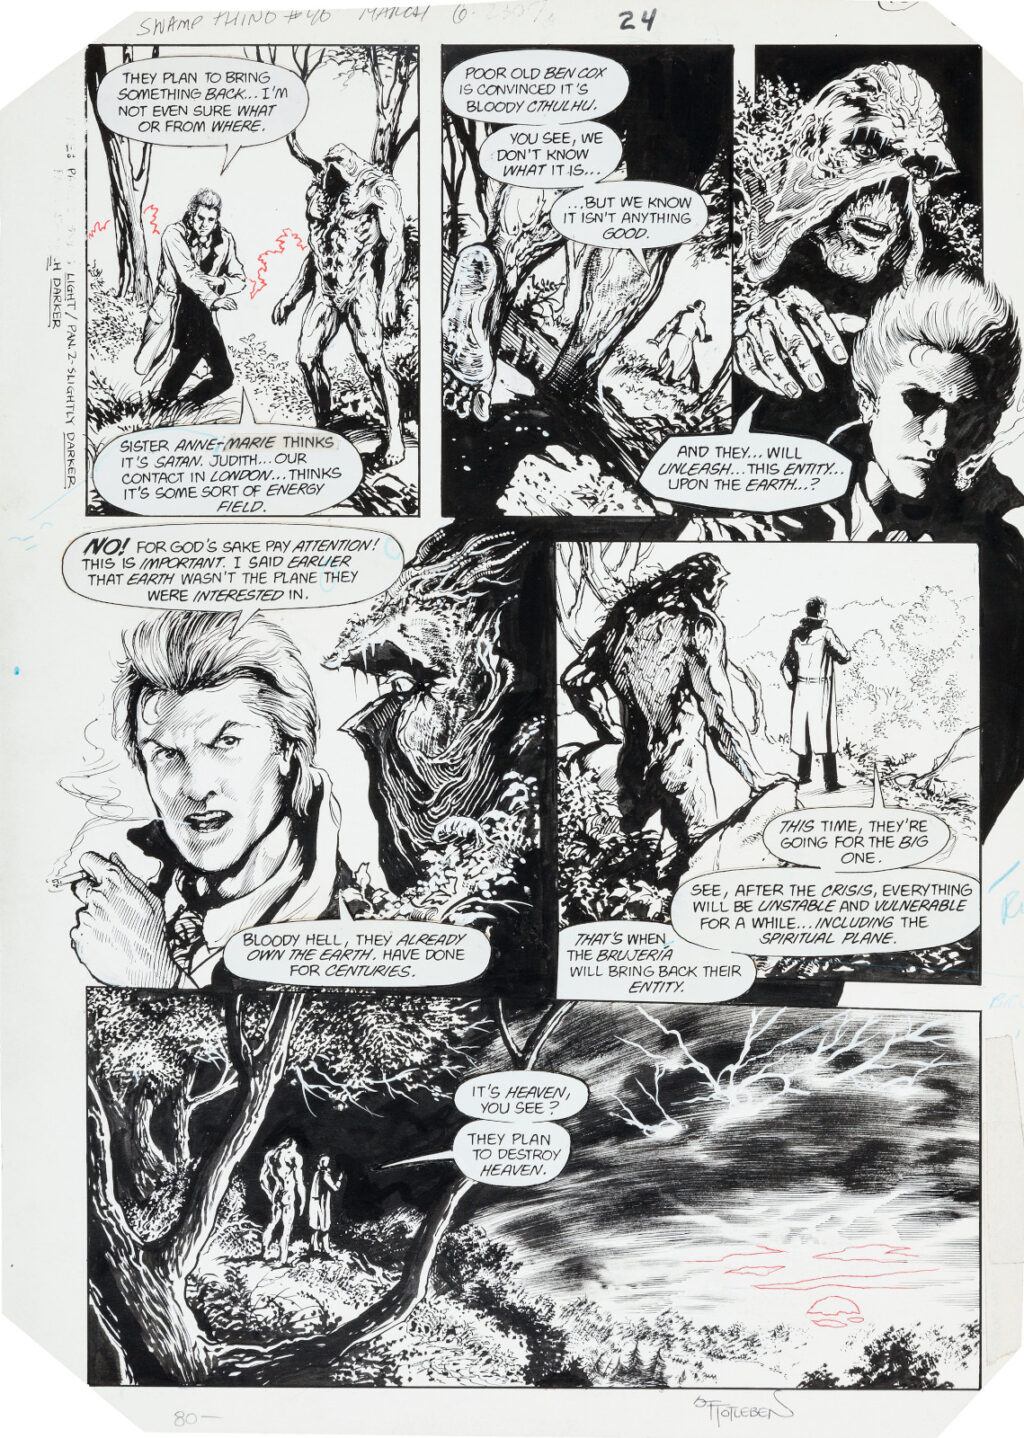 Swamp Thing issue 46 page 24 by Steve Bissette and John Totleben